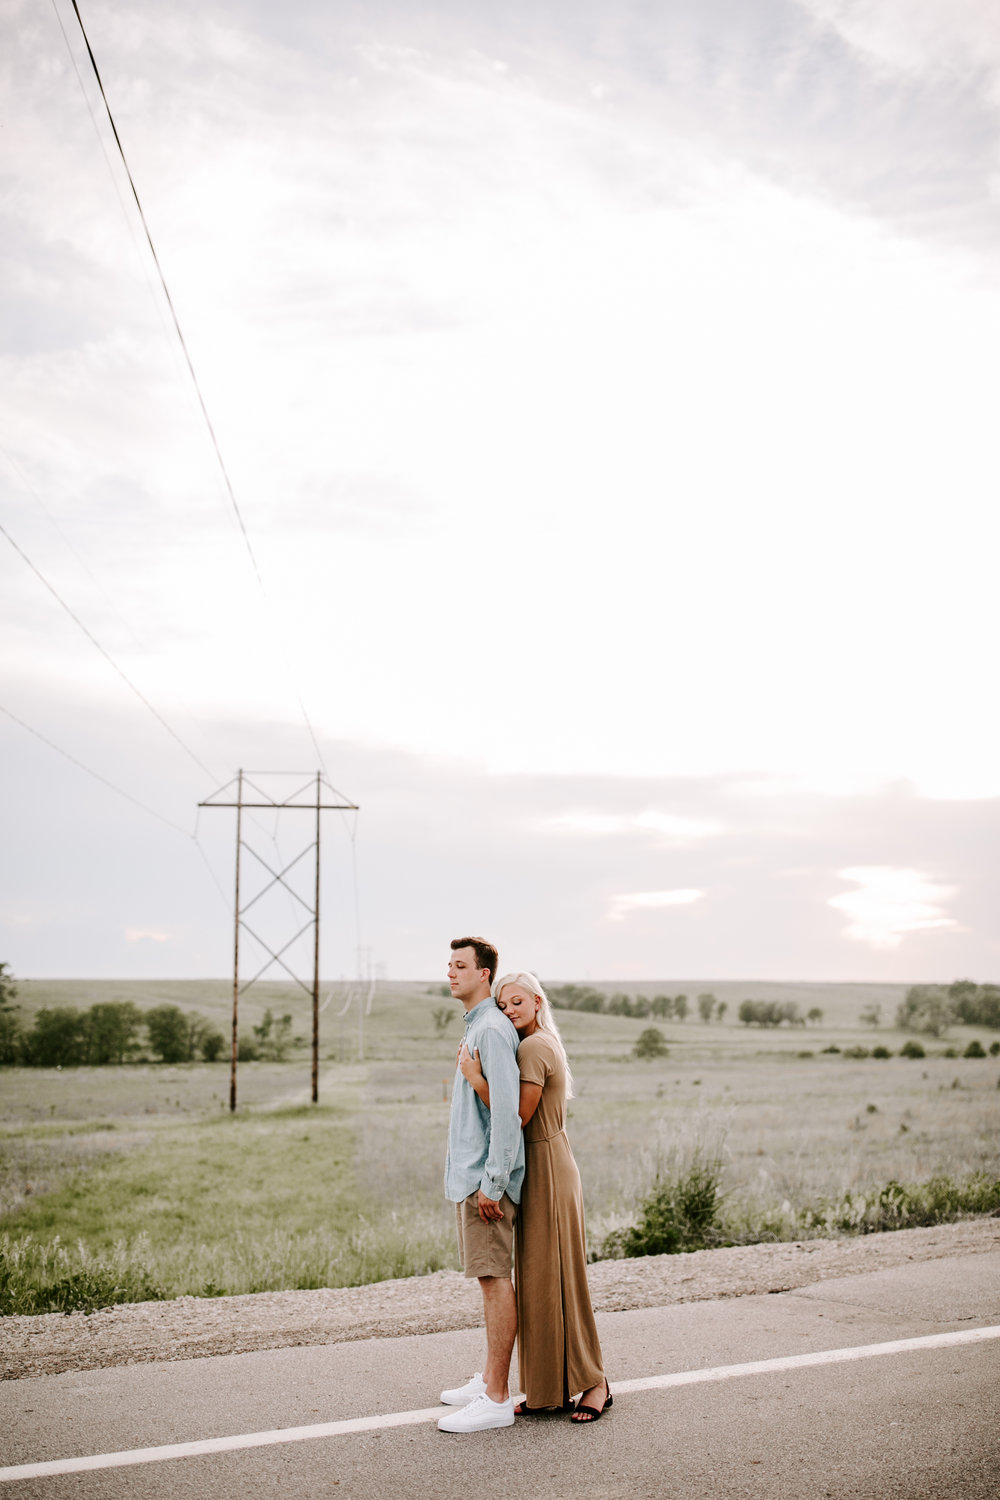 gracetphotography-adventure-session-des-moines-iowa-wedding-photographer-26.jpg